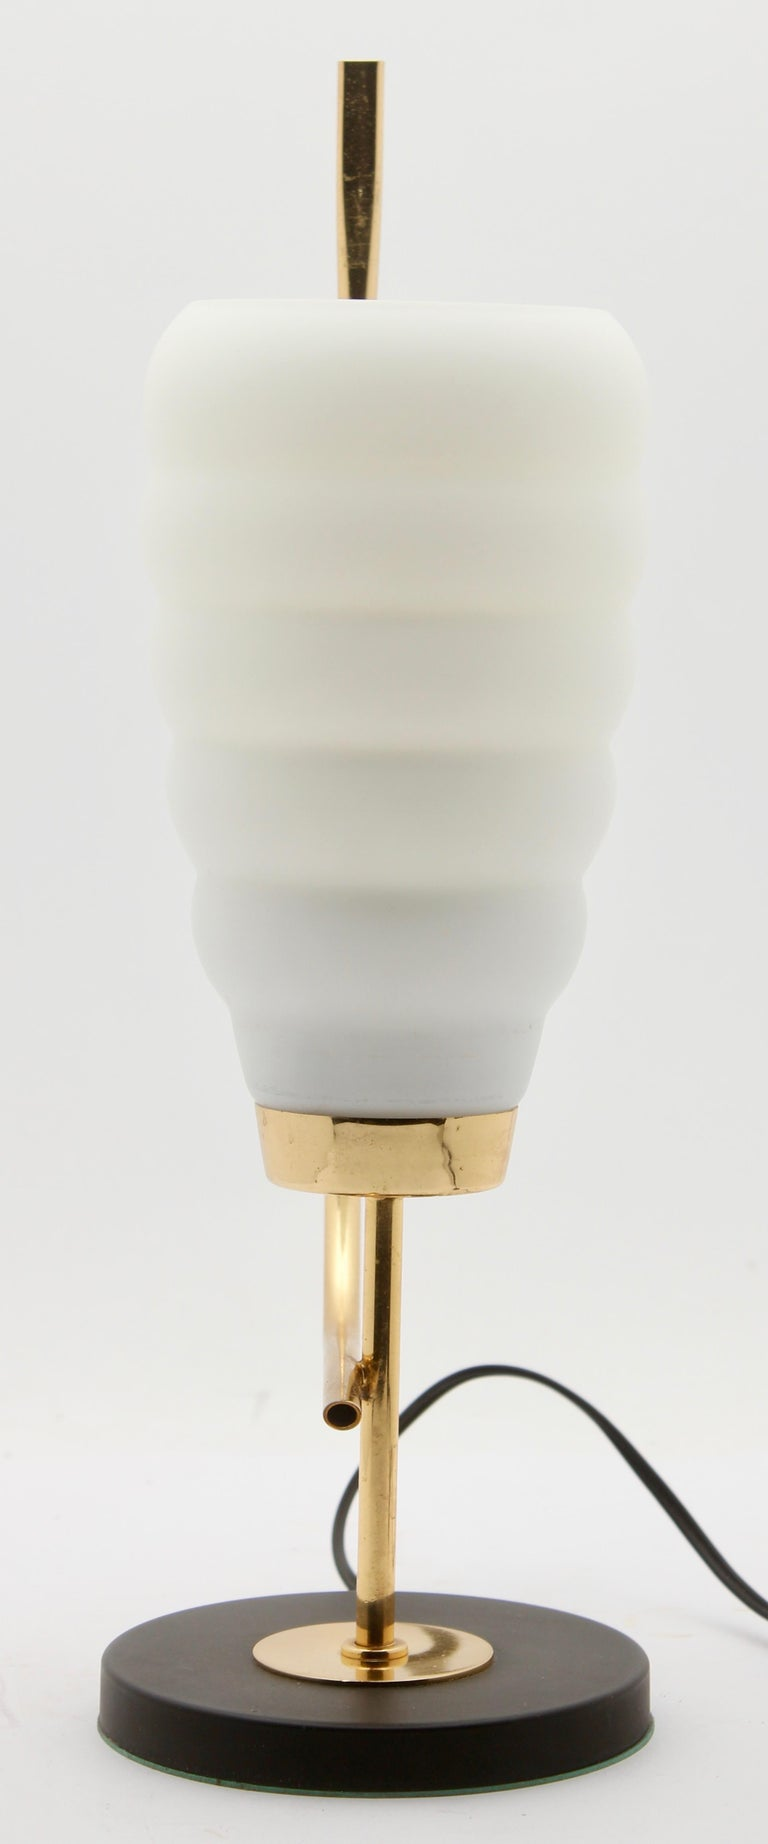 Scandinavian Design Table Lamp with Milk-White Glass Shade and Brass Mounts In Good Condition For Sale In Verviers, BE